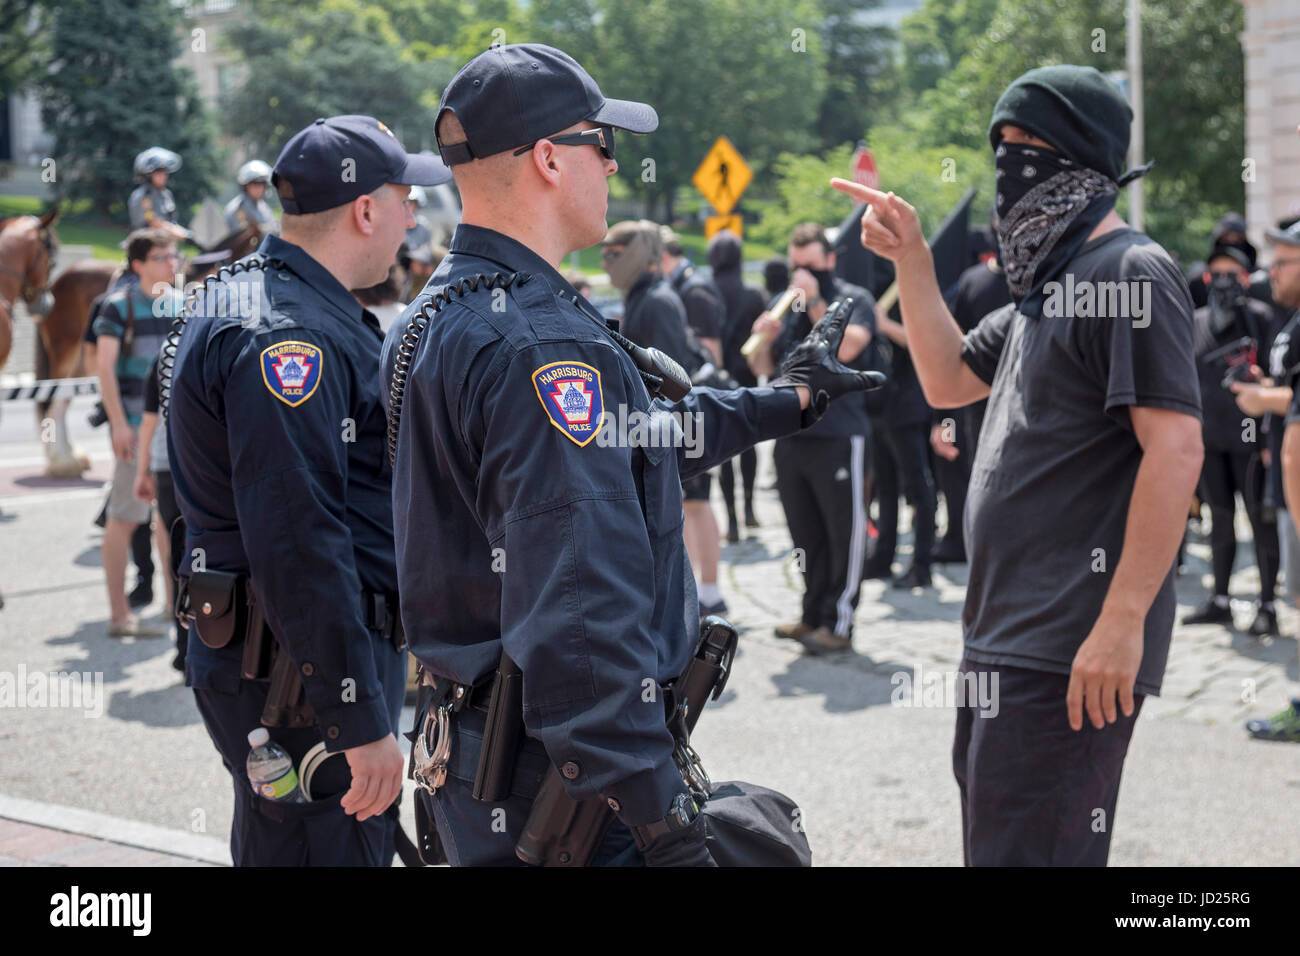 Harrisburg, Pennsylvania - A Black Bloc anarchist argues with police during the Bloc's counter-demonstration - Stock Image